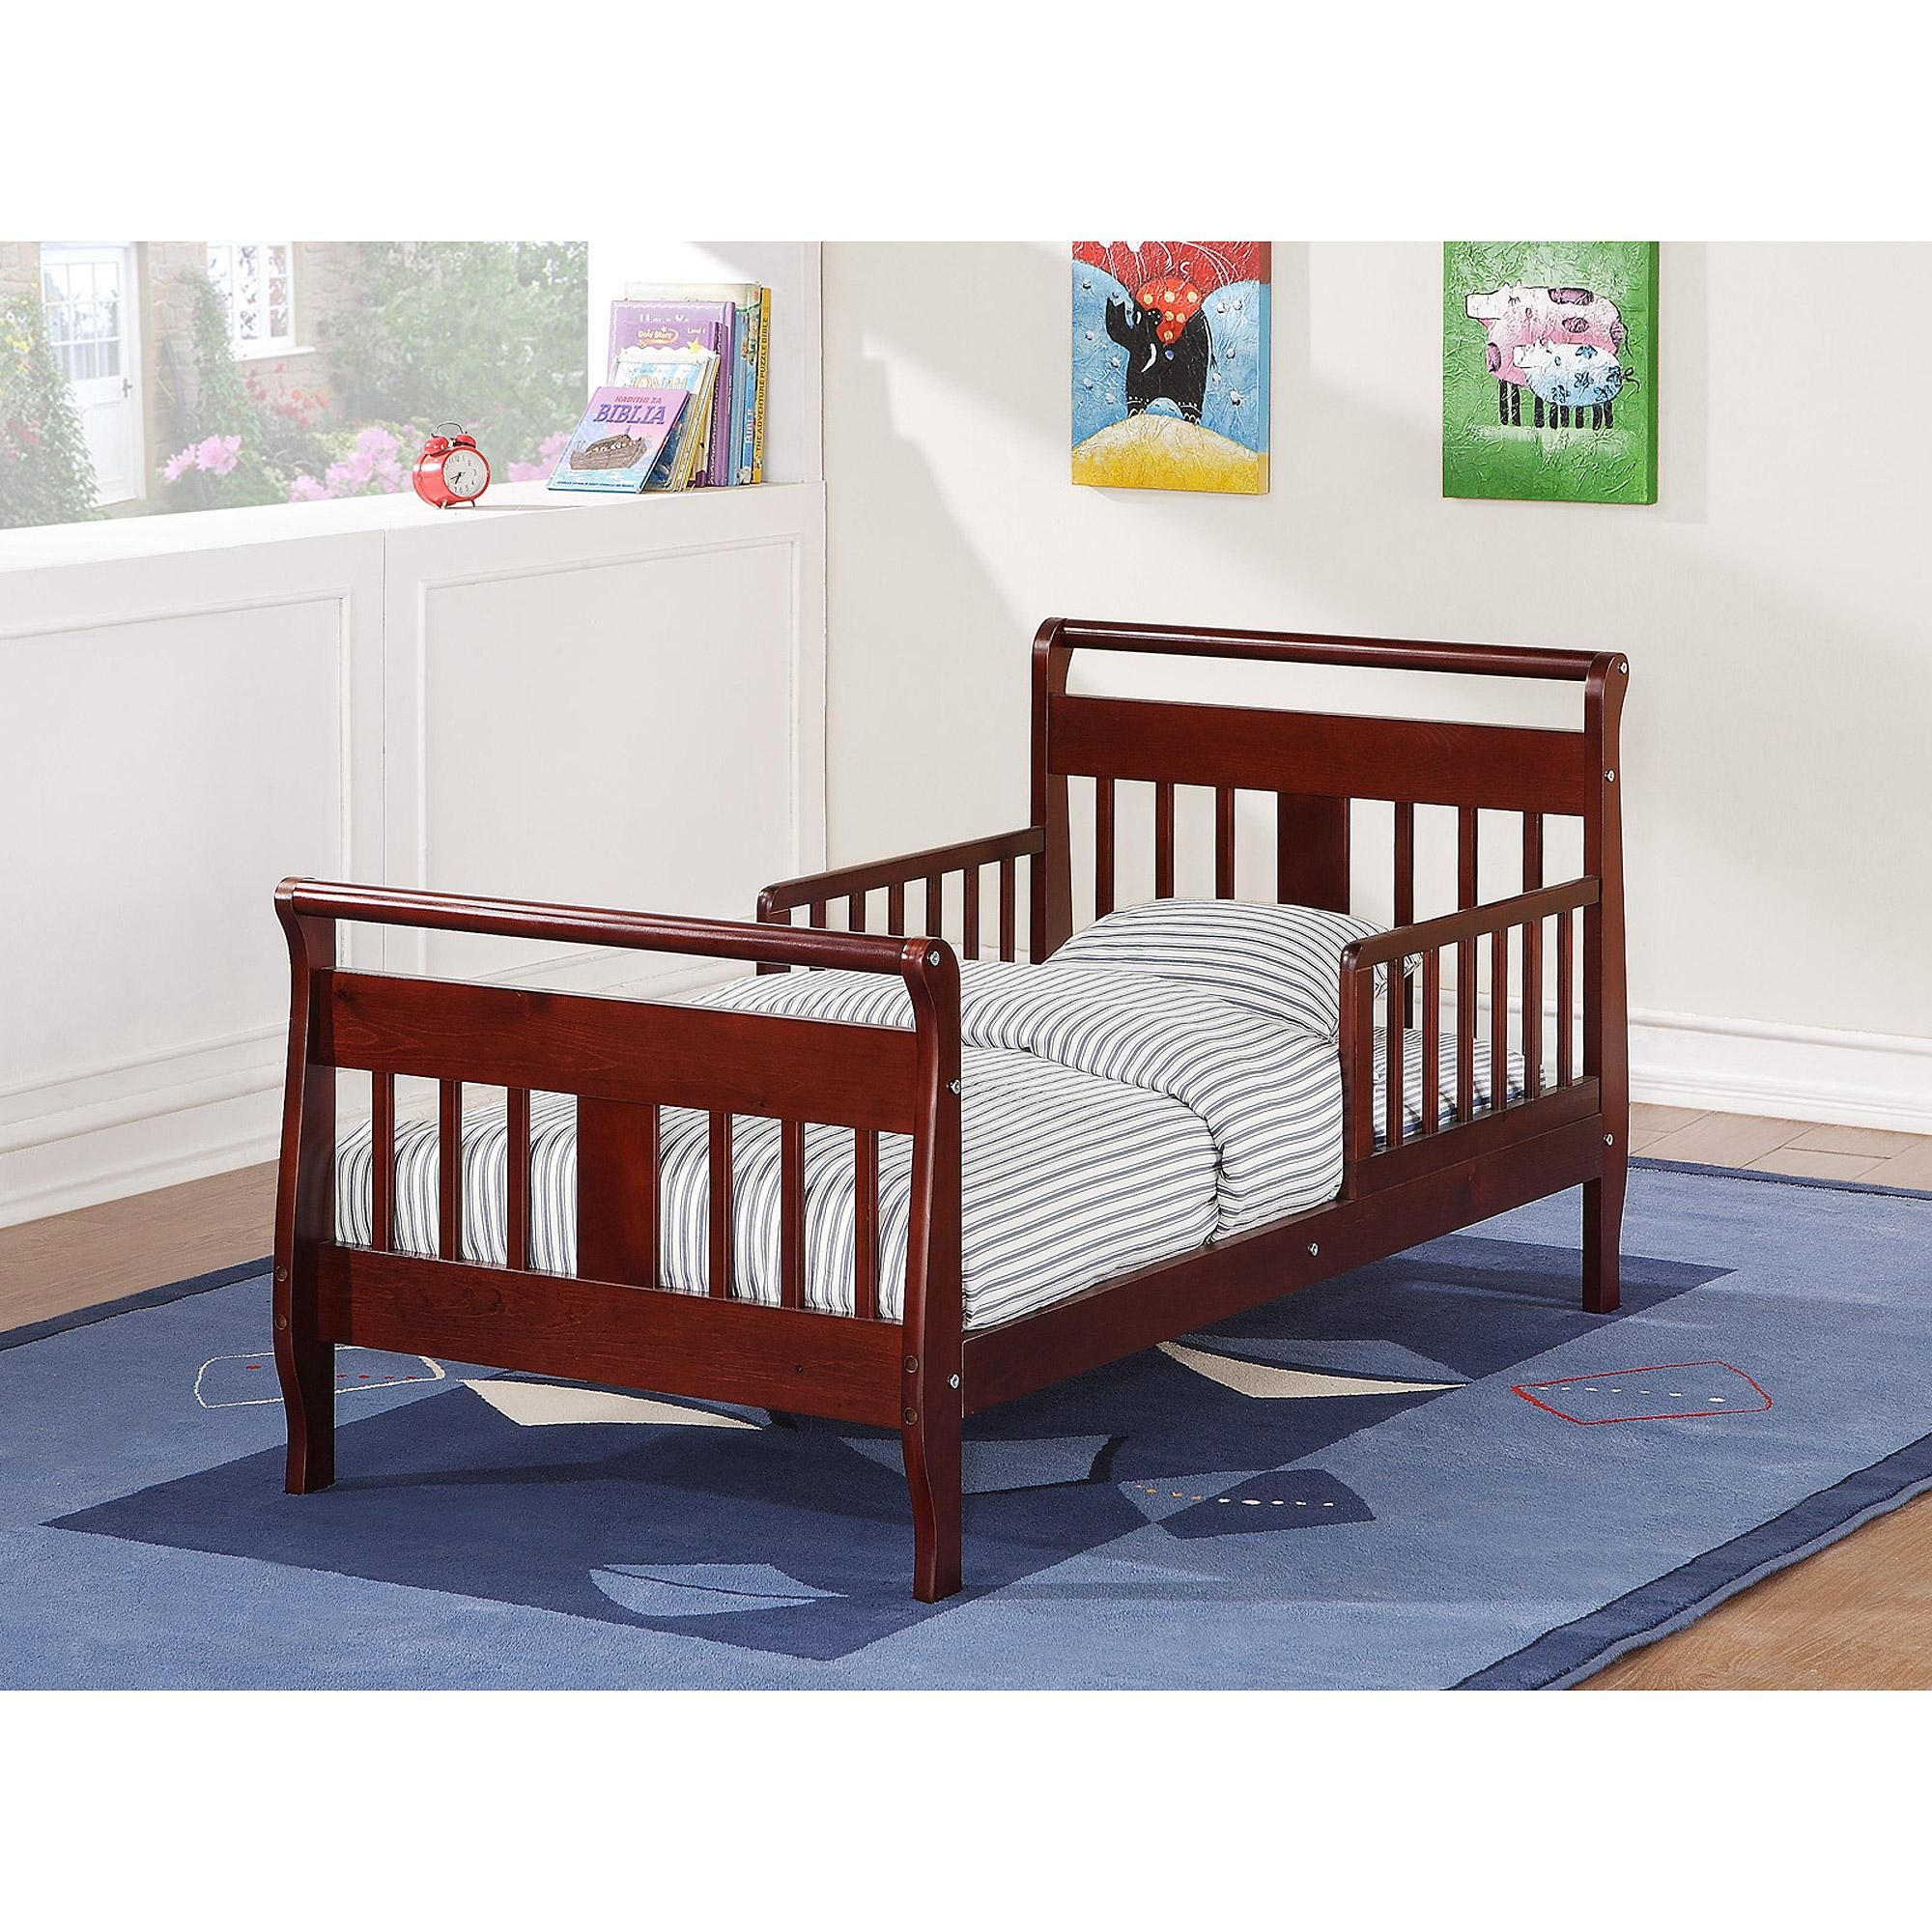 Toddler Beds Walmartcom Ideas For The House Wooden Toddler